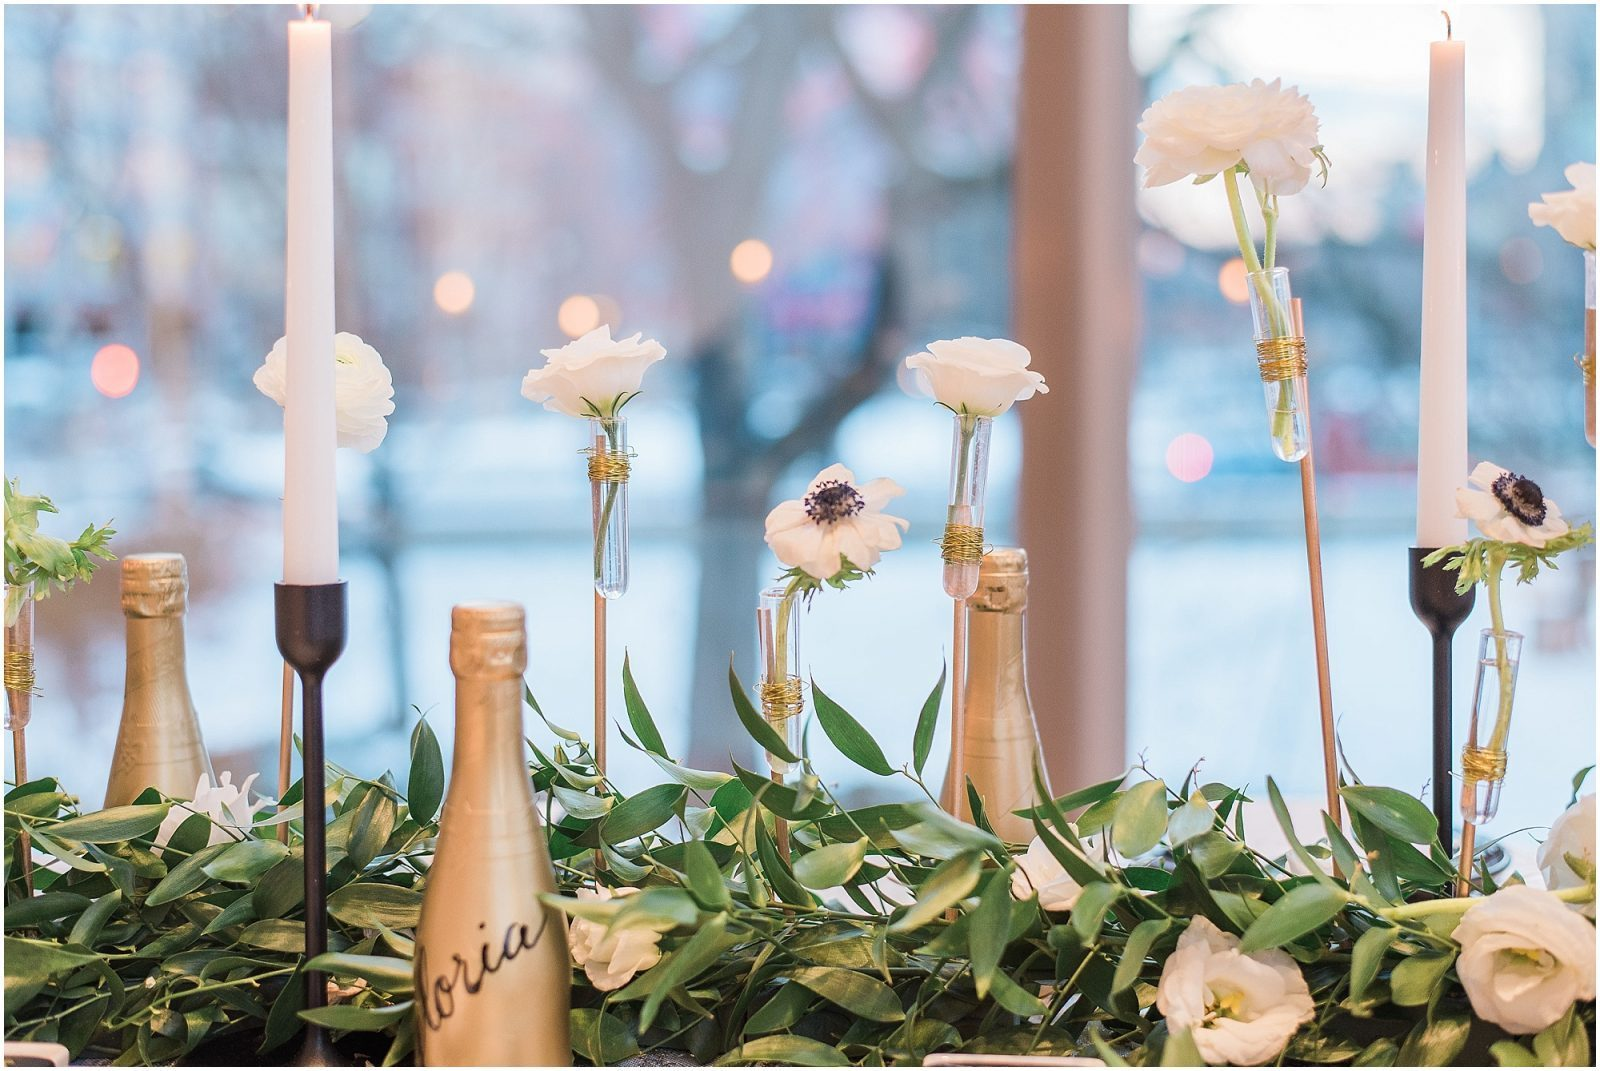 Wedding O'Born Room NAC Ottawa - New Years Glam Wedding Inspiration - bright and airy ottawa wedding photographer - floating flower and garland table runner